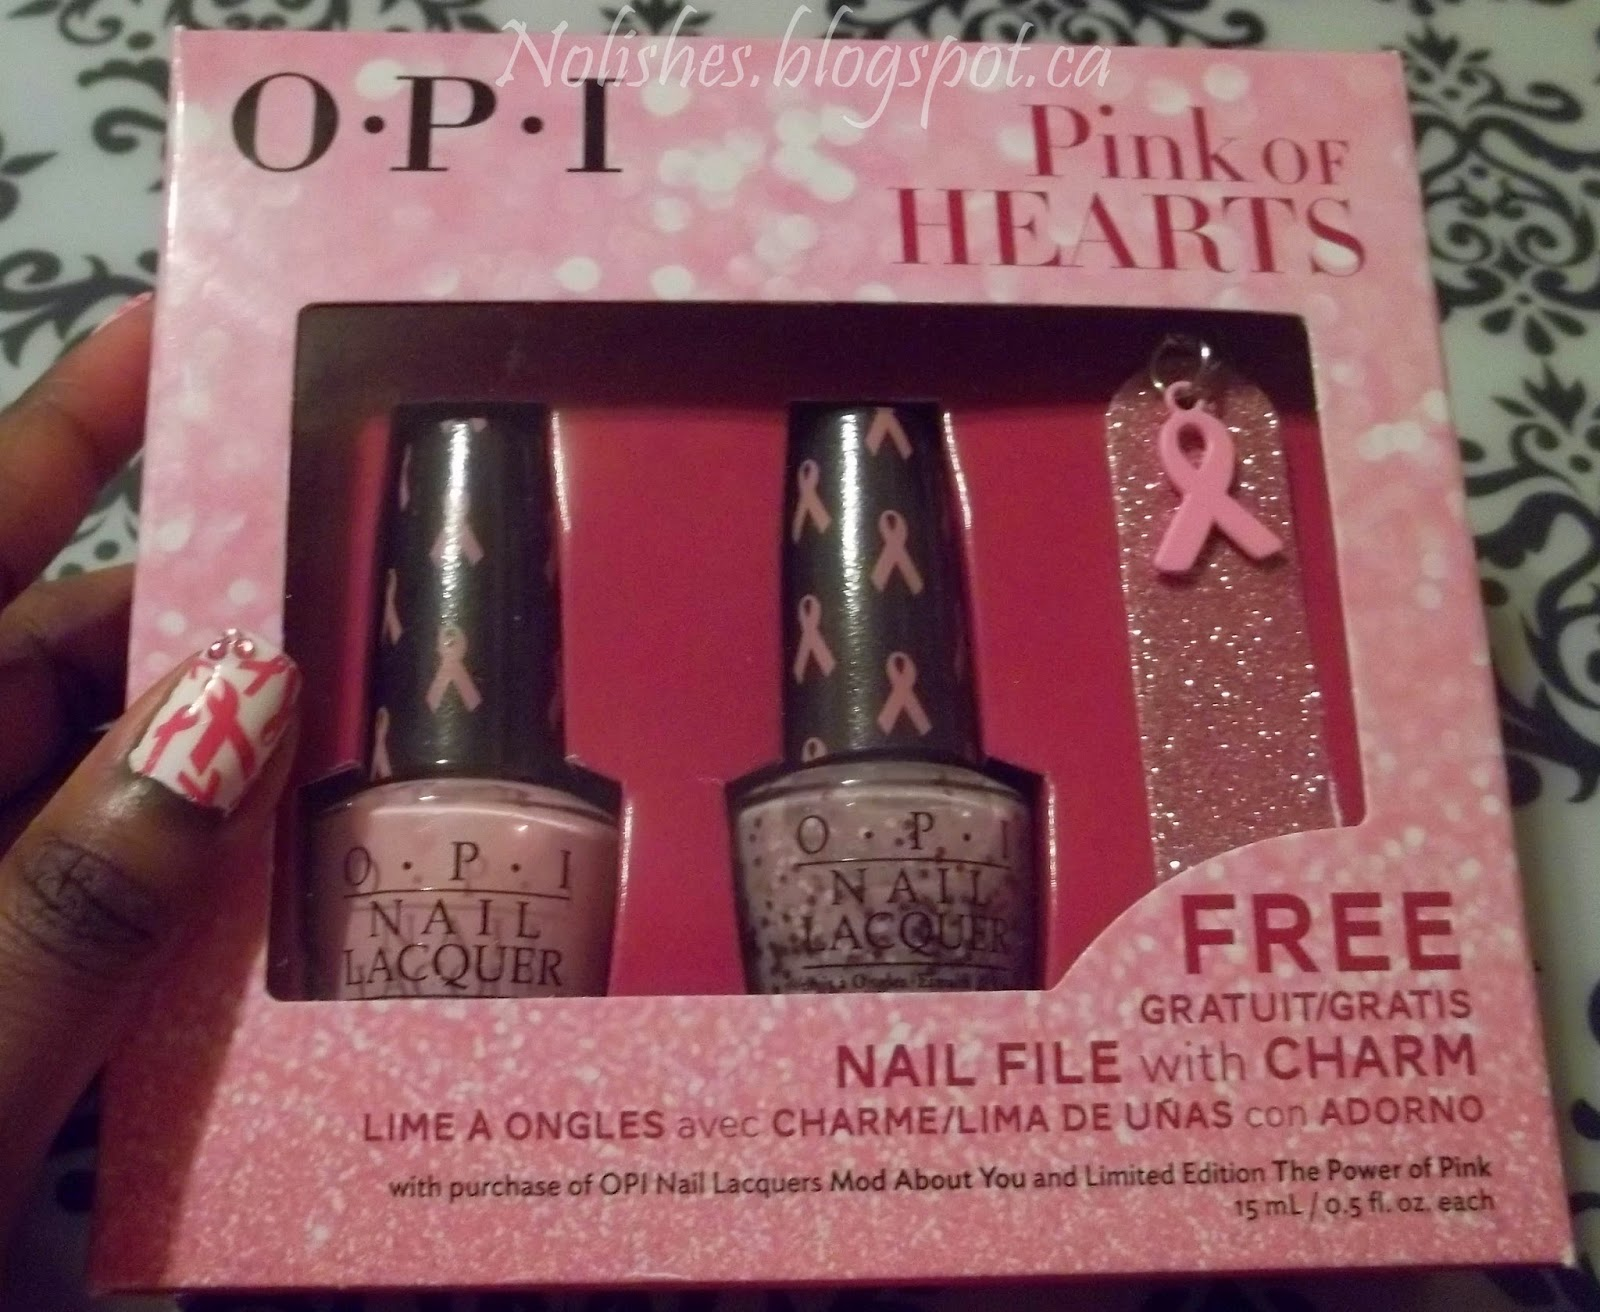 OPI 'Pink of Hearts' 2014 Duo (boxed) containing OPI 'Mod About You', and 'The Power of Pink'